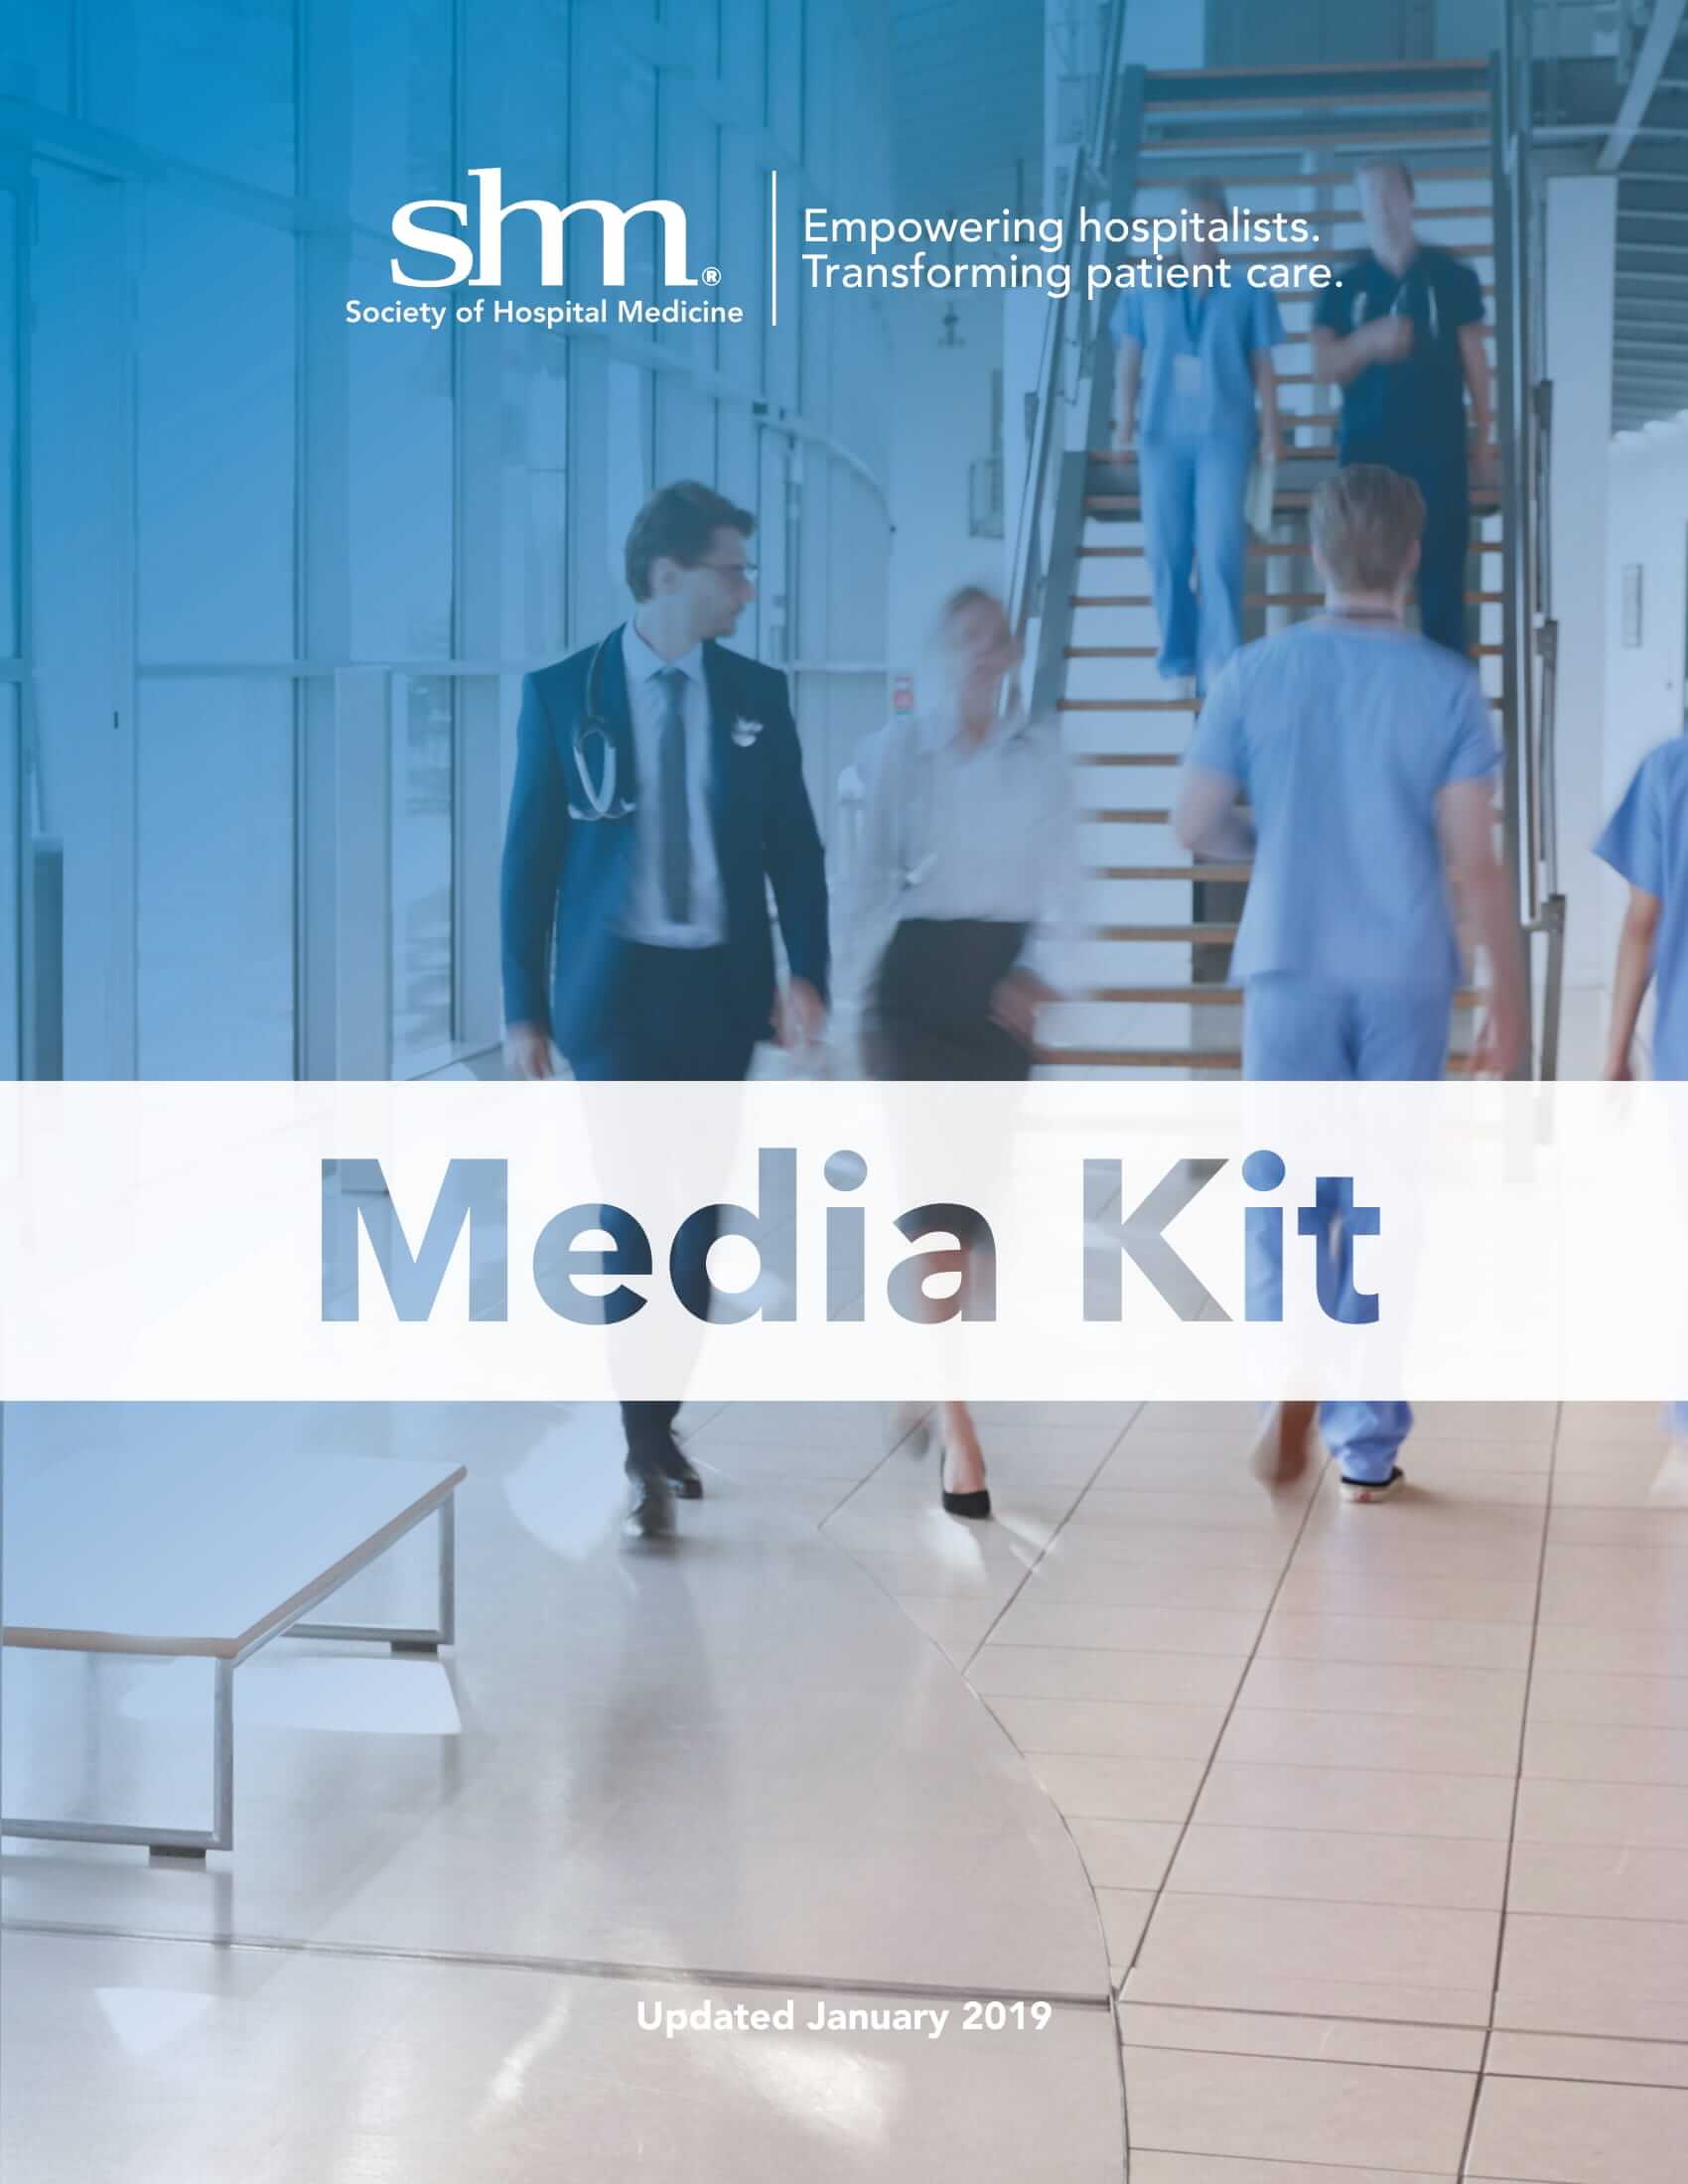 Society of Hospital Medicine Media Kit-01.jpg